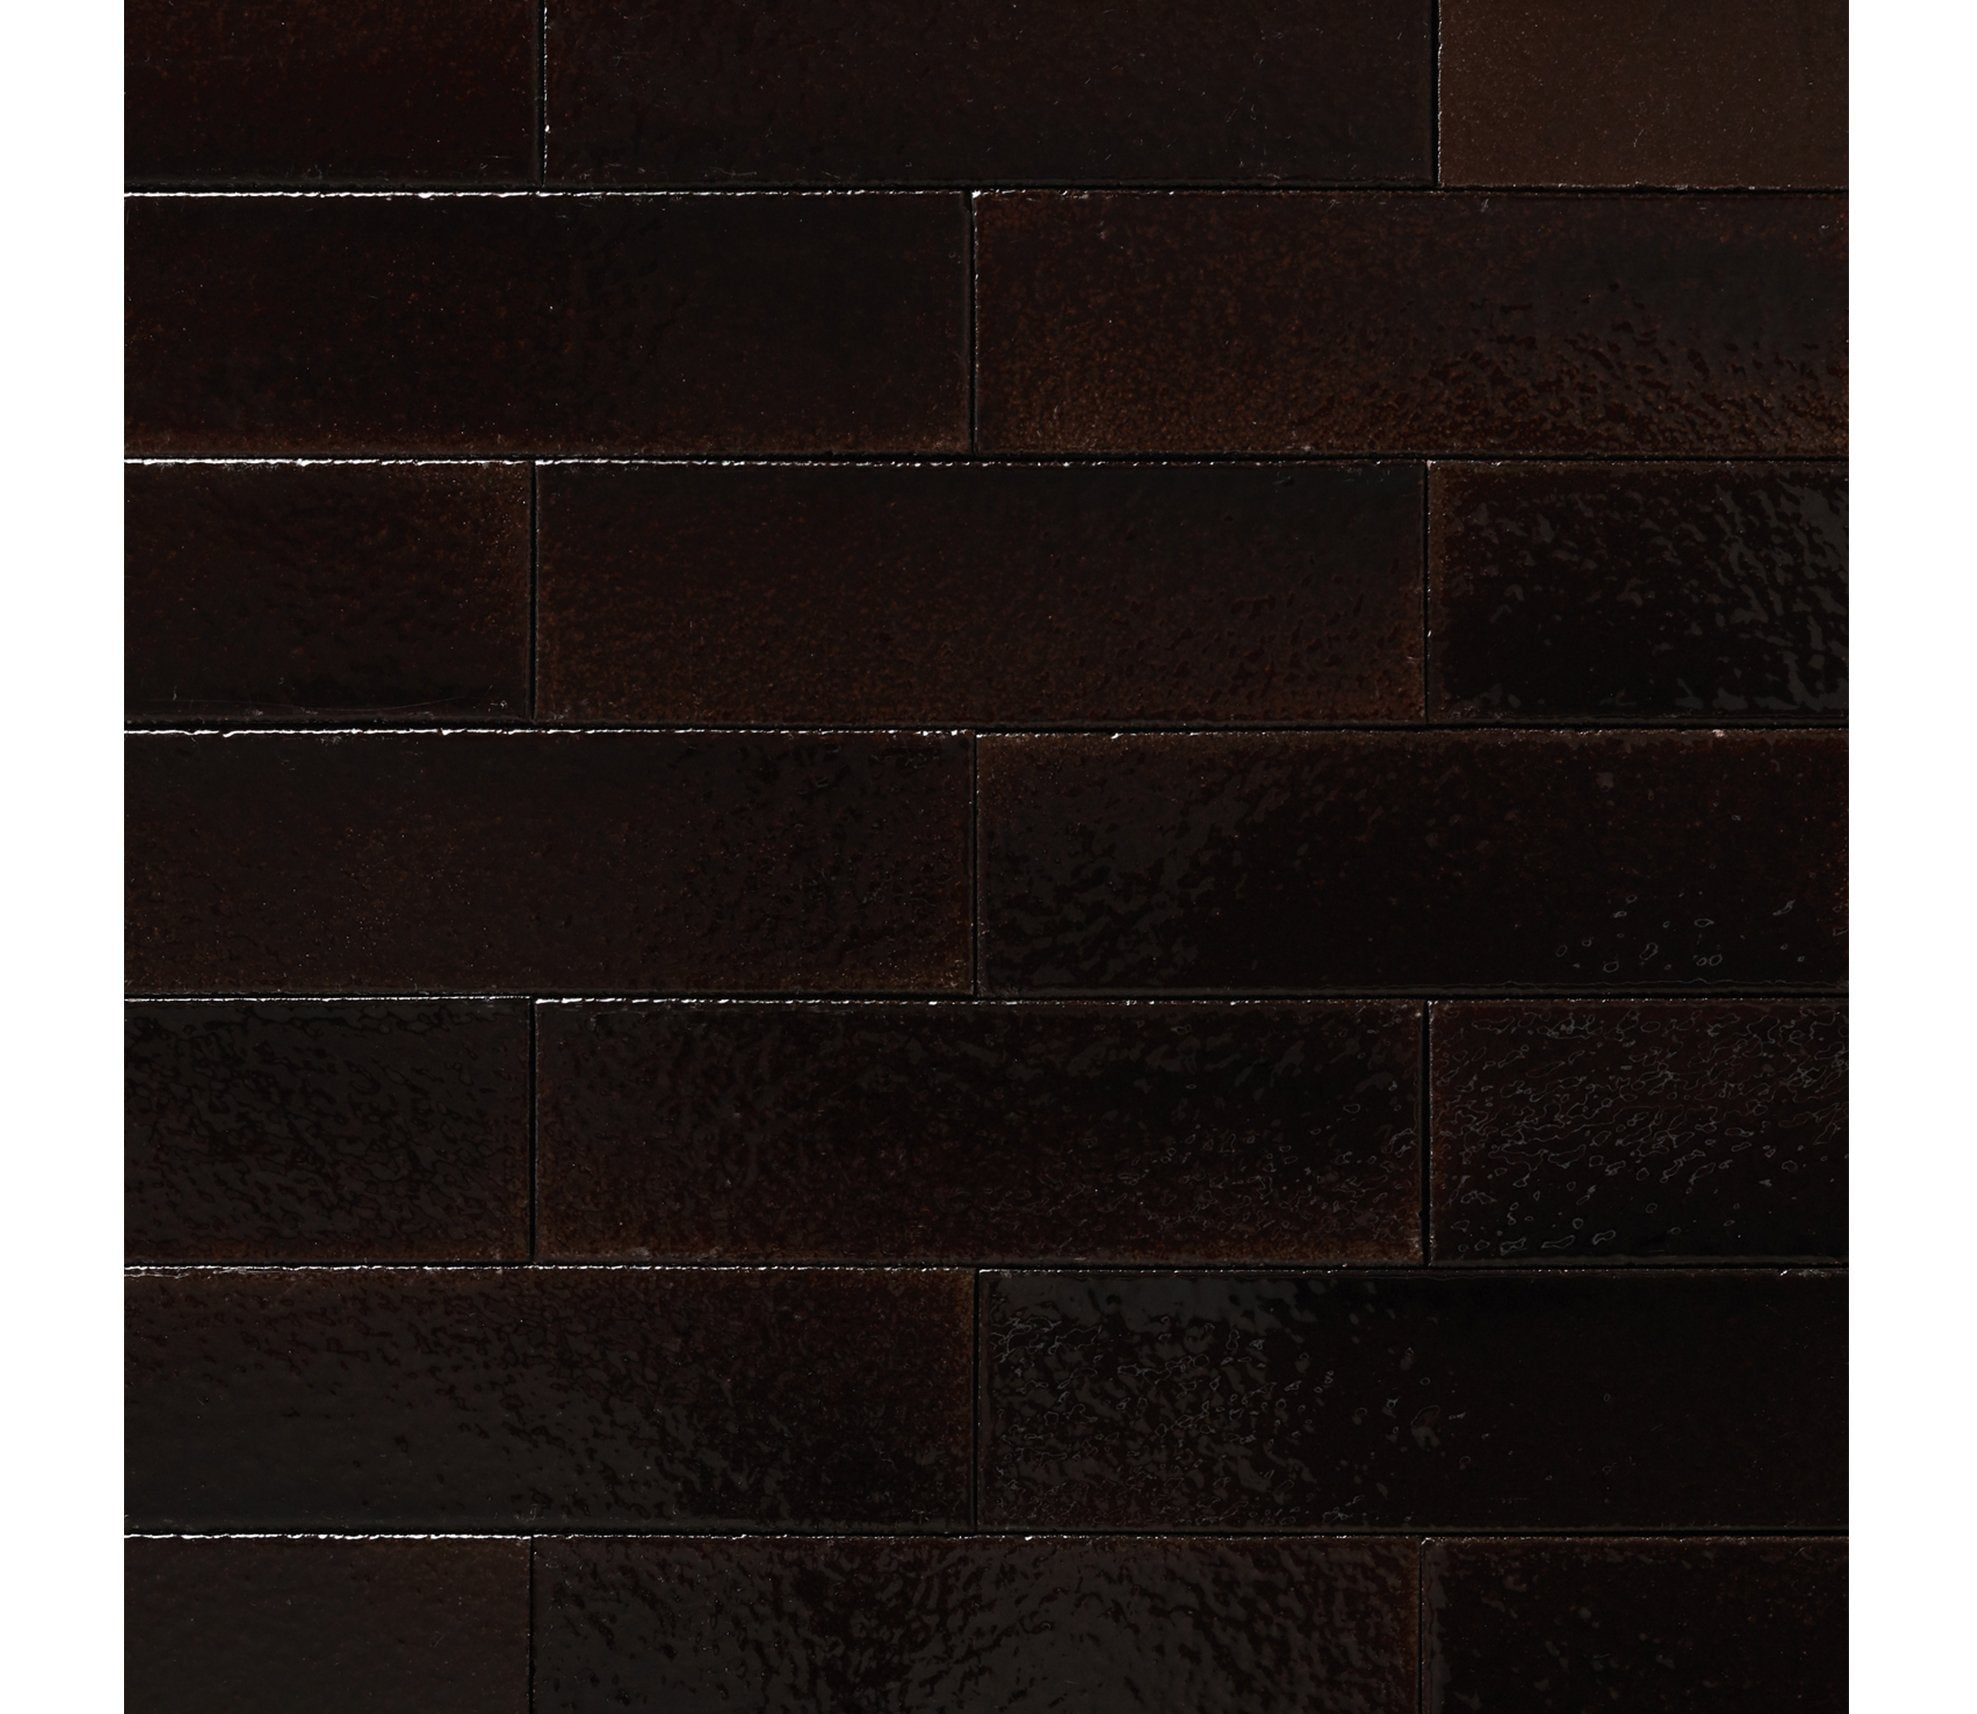 Terra Firma Glazed Bricks Product Image 53